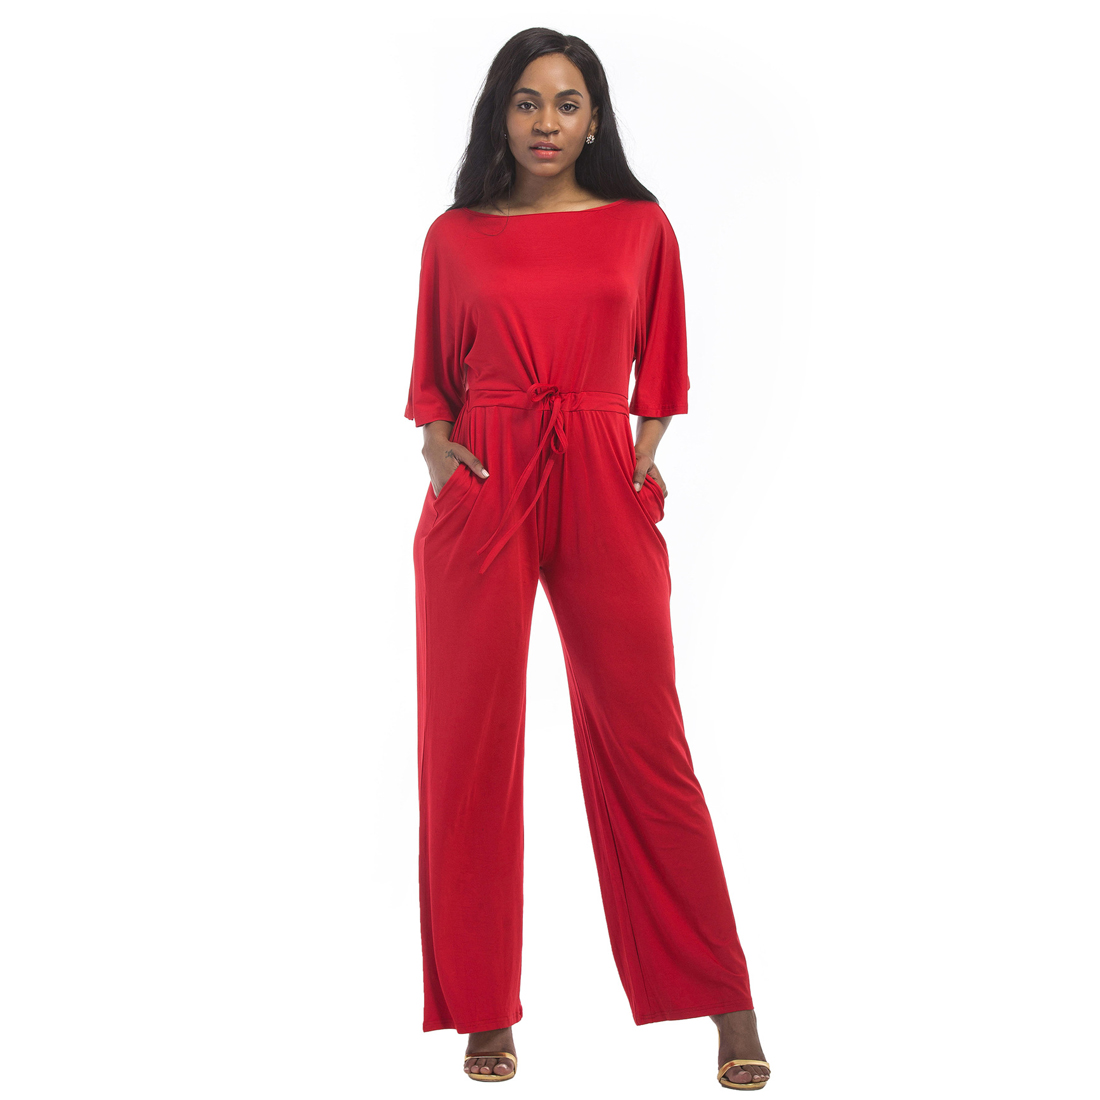 Plus Size Loose Jumpsuits Women Short Sleeve Tied Waist Solid Overalls 2017 Office Work Elegant Rompers 2017 Long Wide Leg Pants